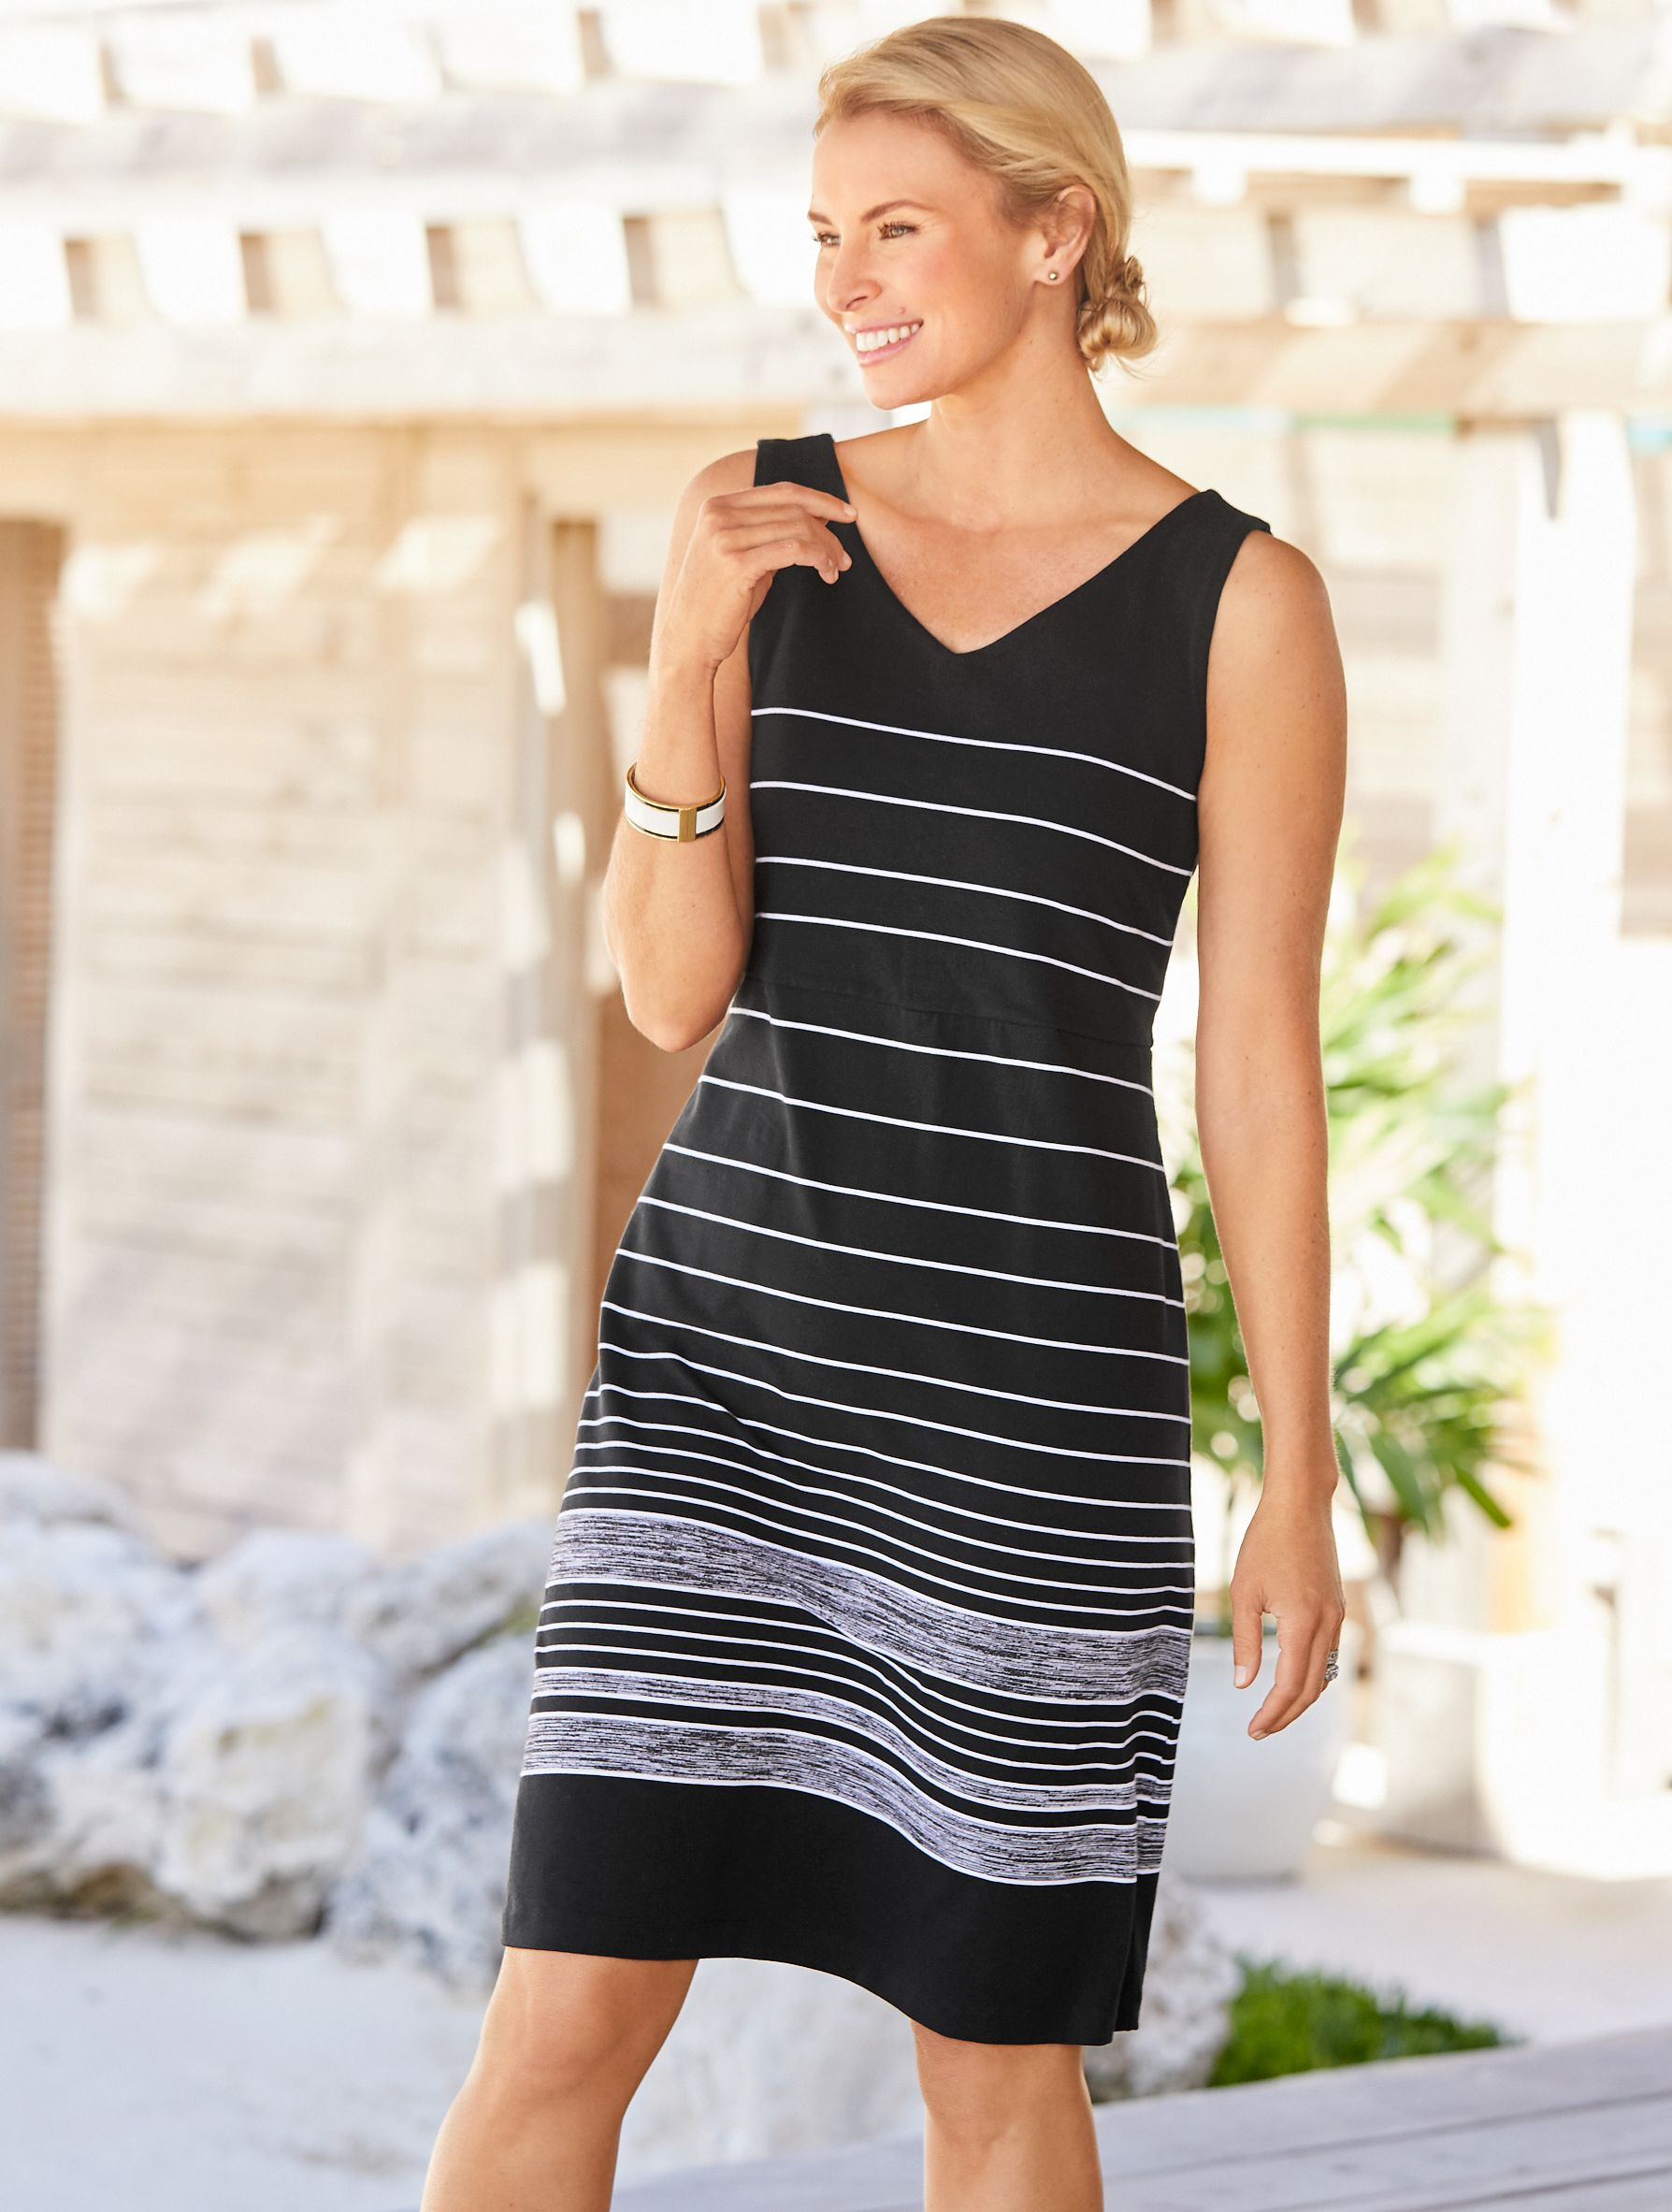 Black White Striped A Comfortable Knit Dress Is The The Most Modern Way To Wear This Timeless Color Duo Talbots Stripe Outfits Dresses V Neck Dress [ 2365 x 1788 Pixel ]